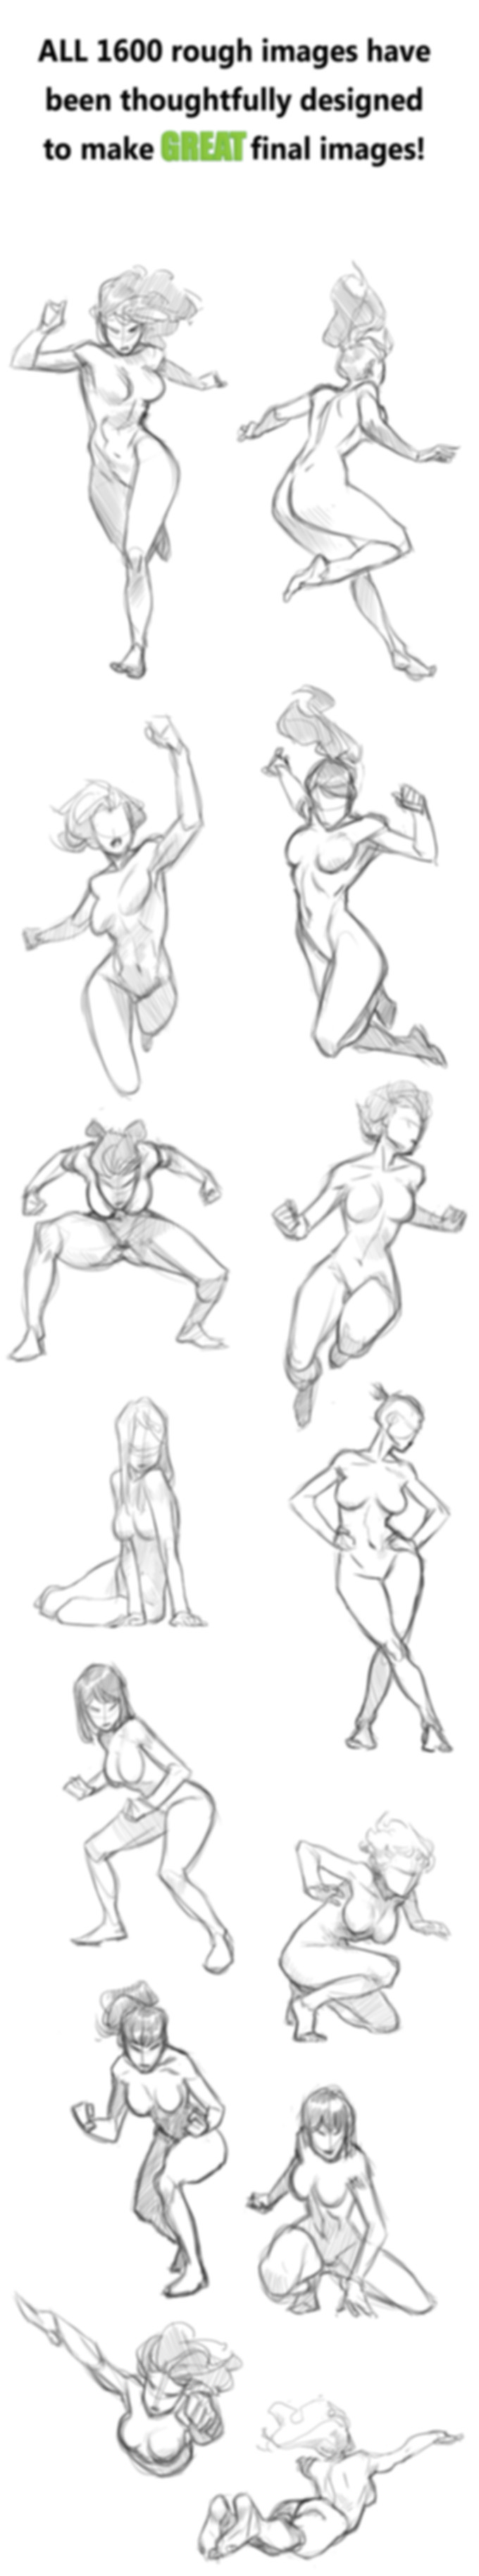 female_action_poses_roughs.jpg